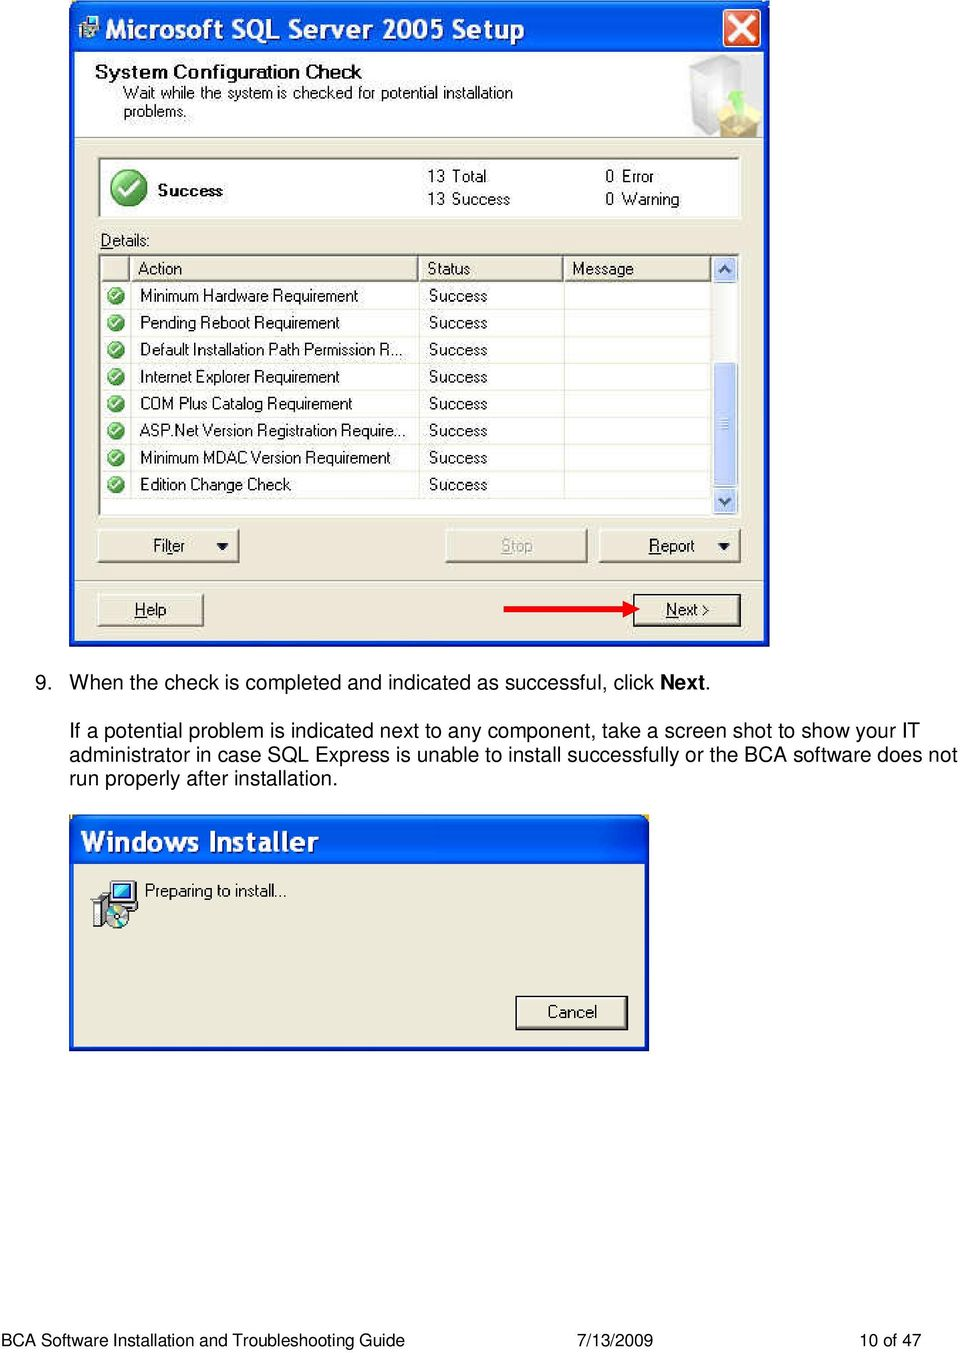 IT administrator in case SQL Express is unable to install successfully or the BCA software